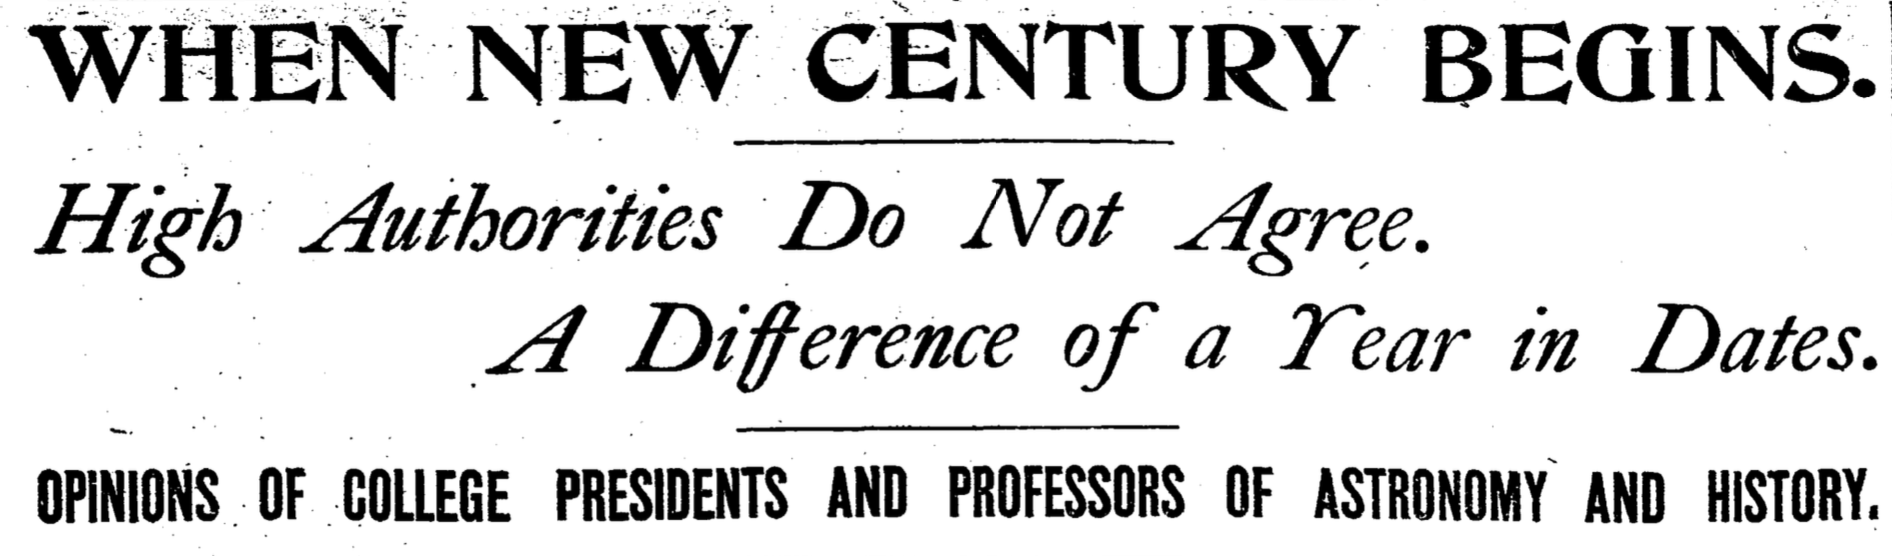 Headline of the [10 December 1899 _Boston Herald_](#fn:colleges) that sought input from collegiate experts.